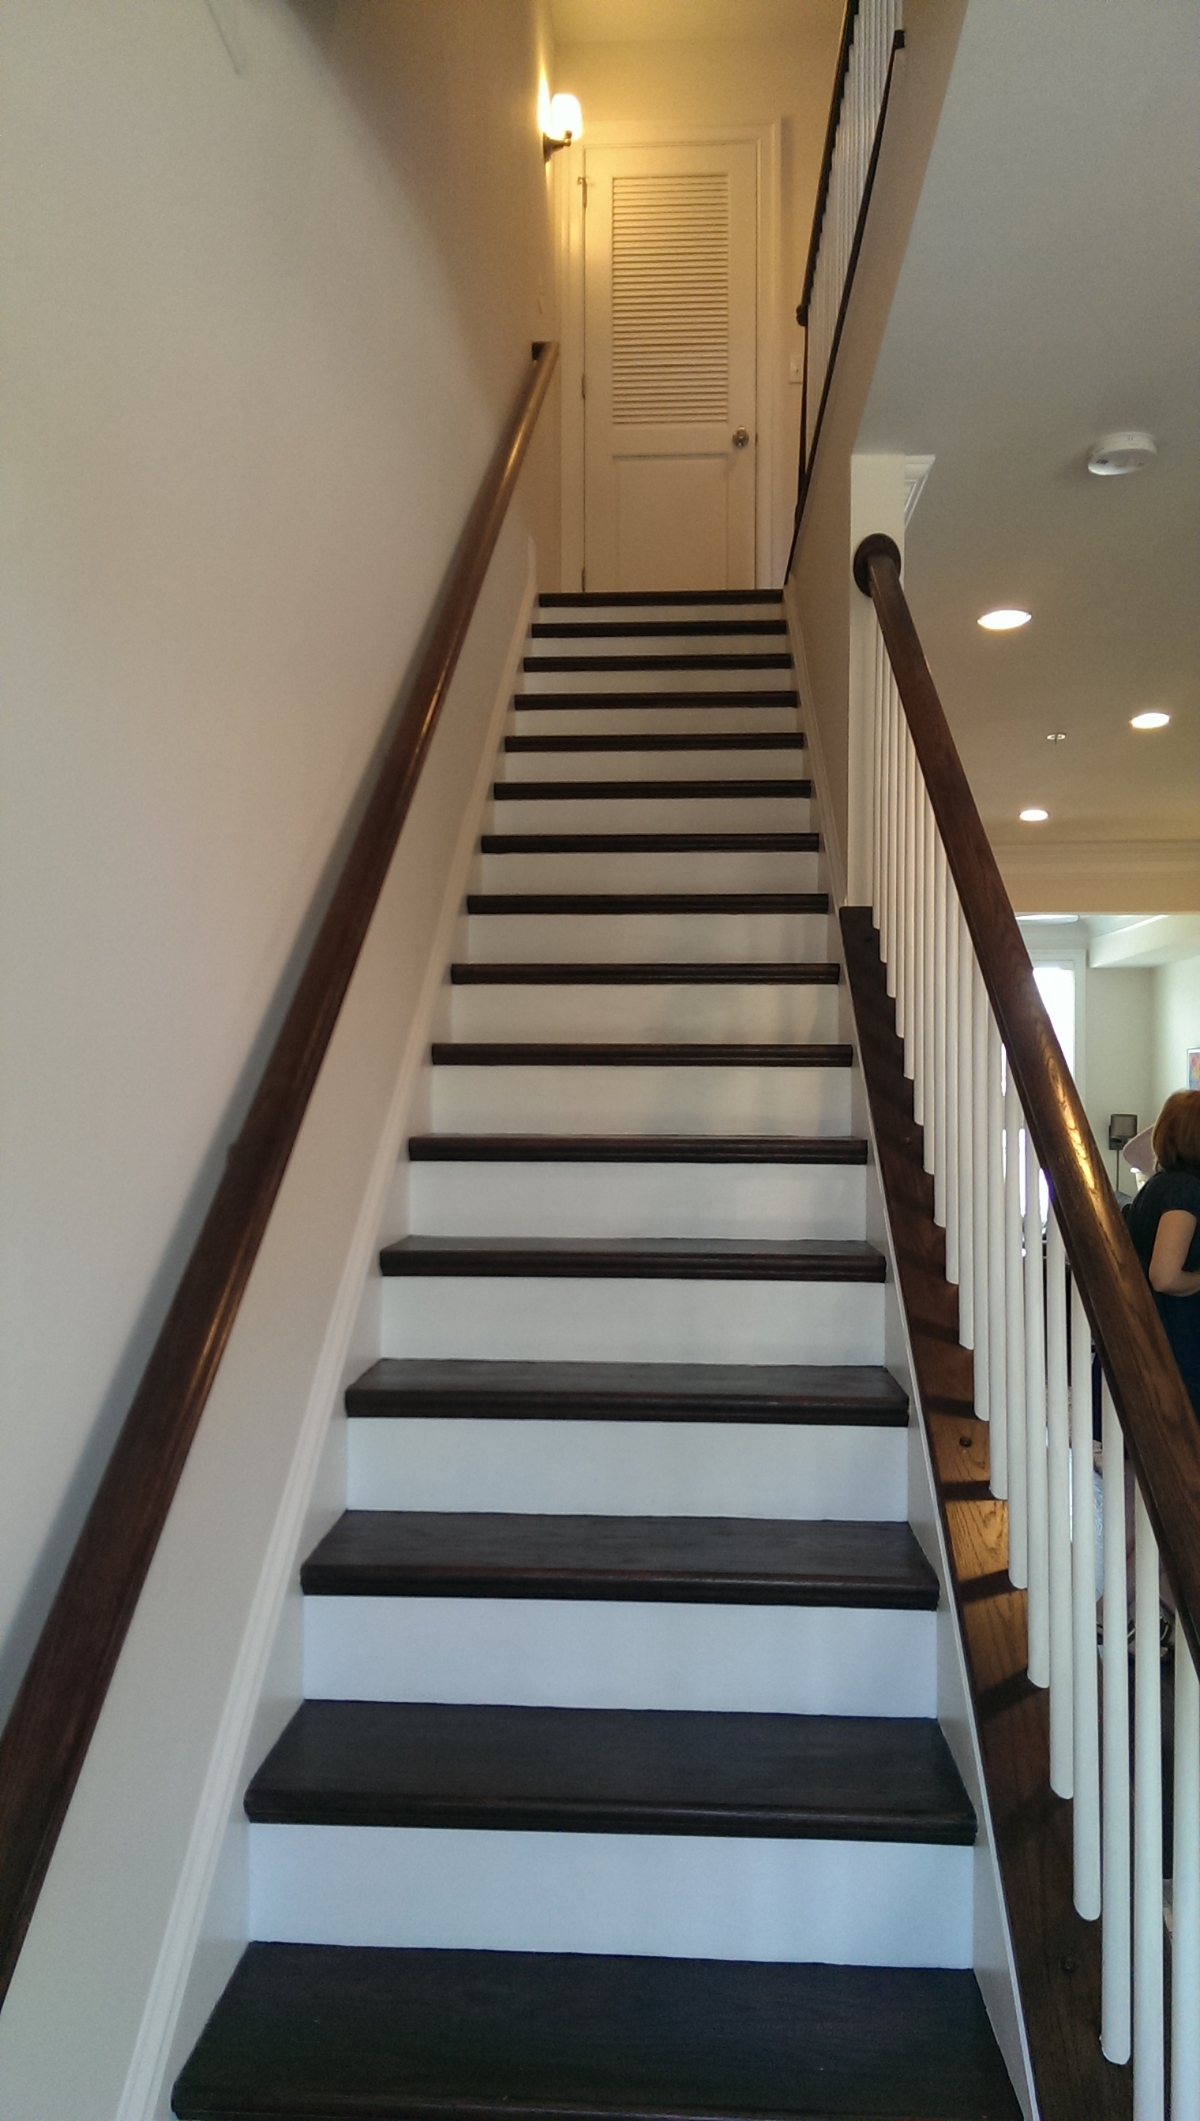 Interior stairwells include the riser height and thread for each staircase.